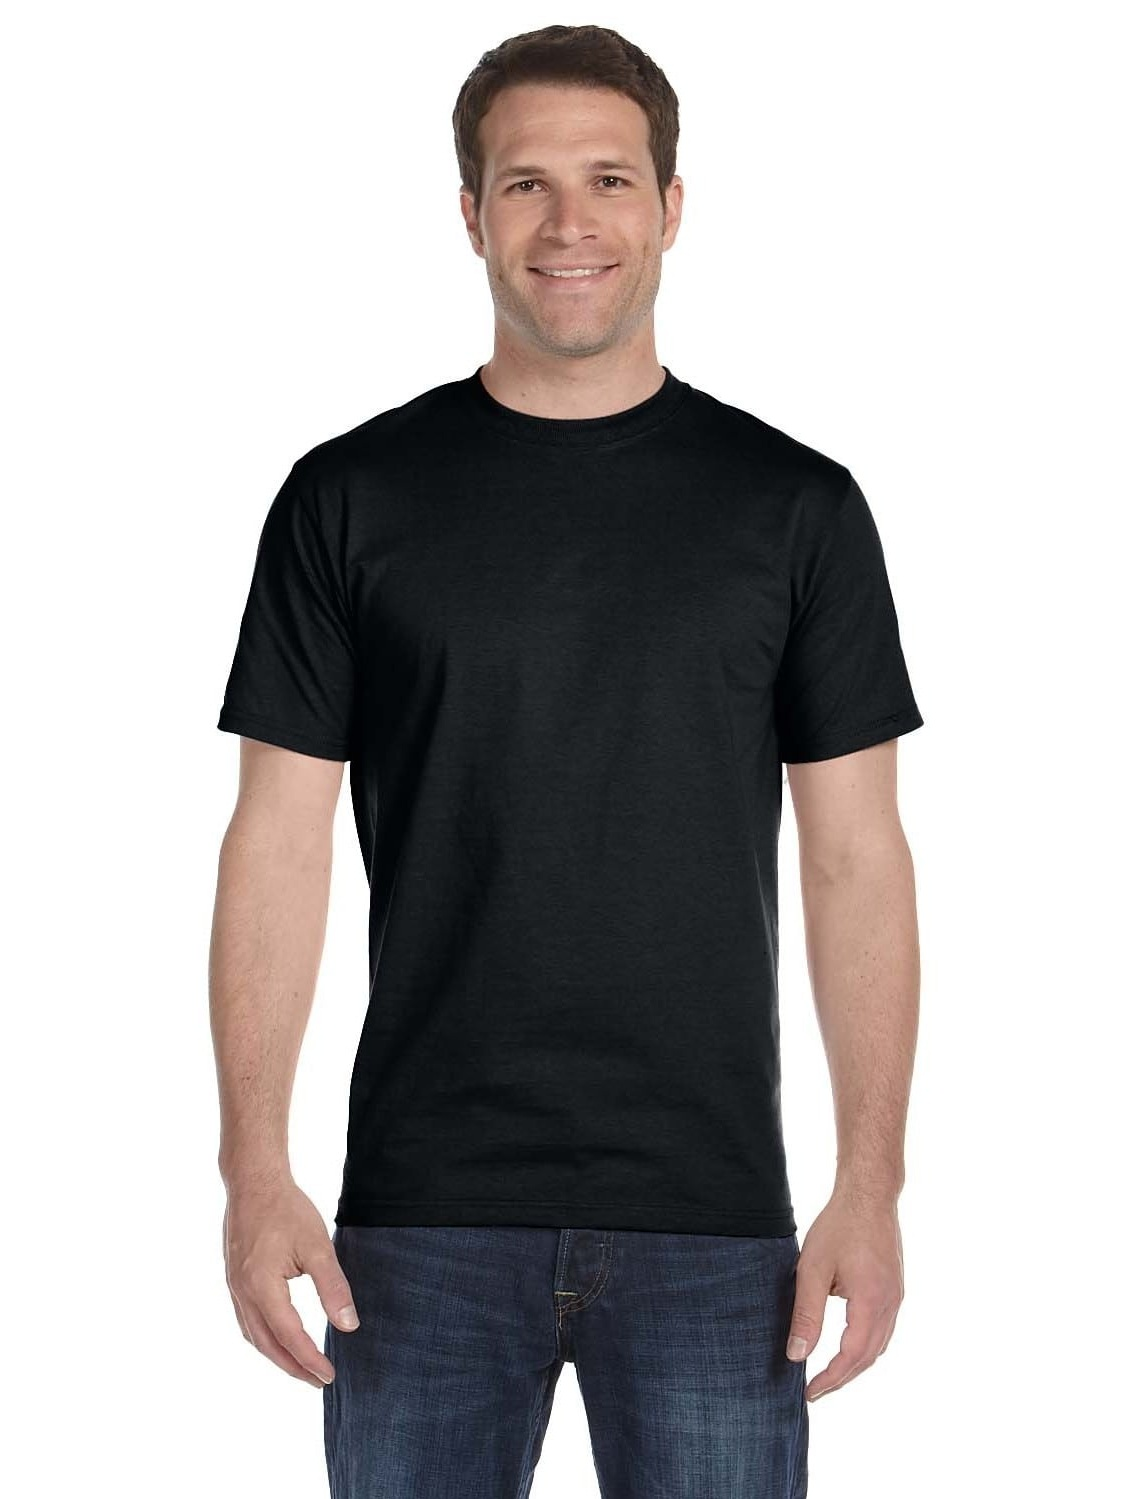 Gildan  Men's Black Dryblend 50/50 Undershirts (Pack of 9)